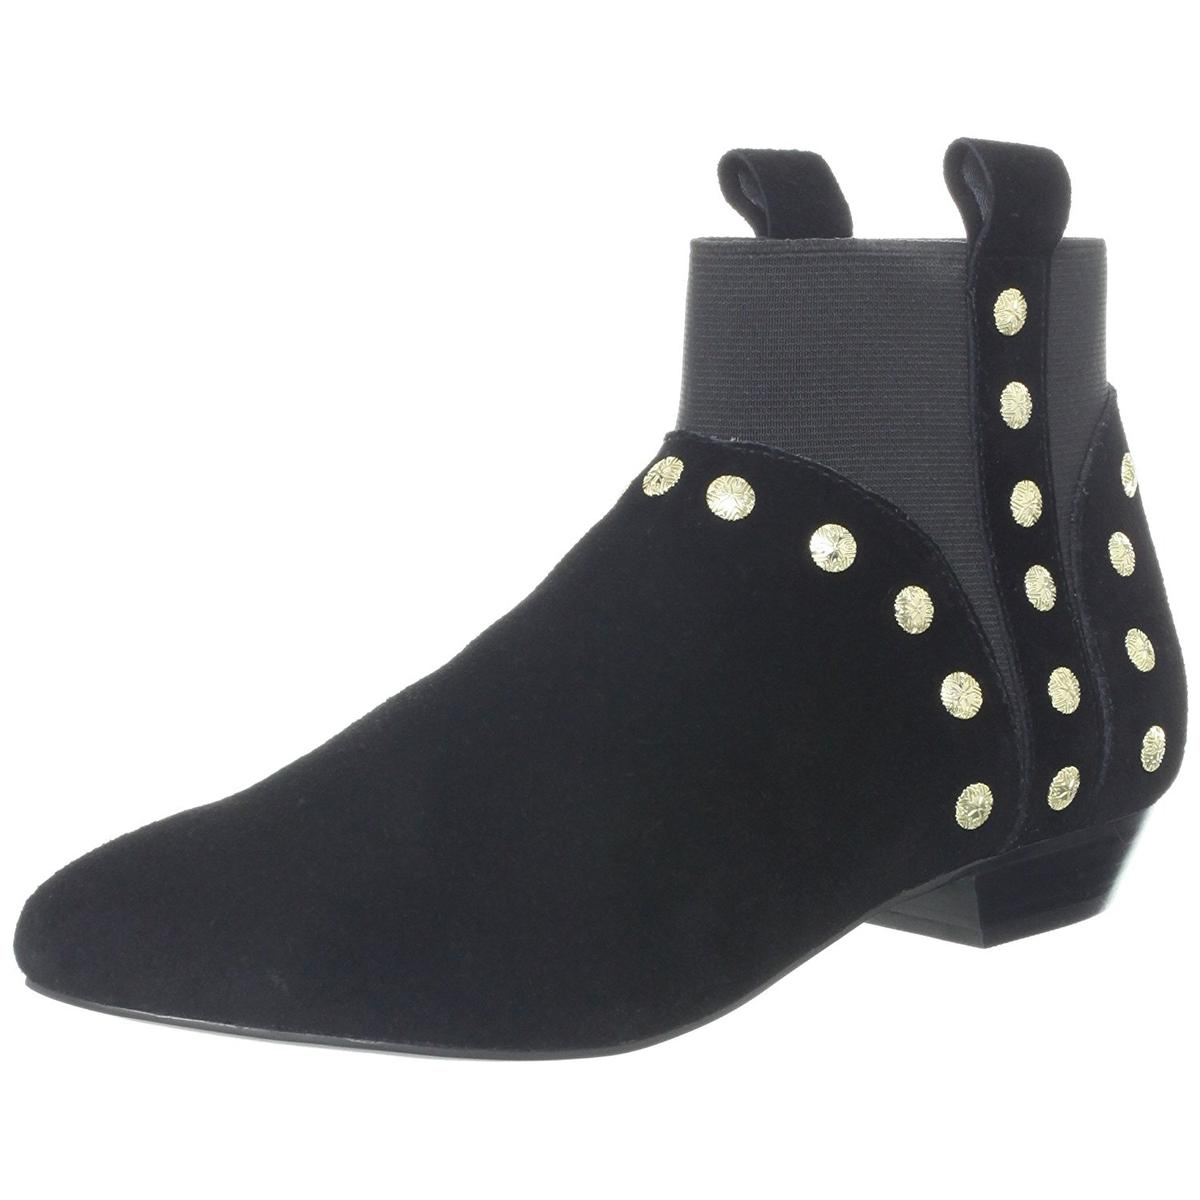 Cynthia Vincent Women's Dale Black Studded Ankle Booties